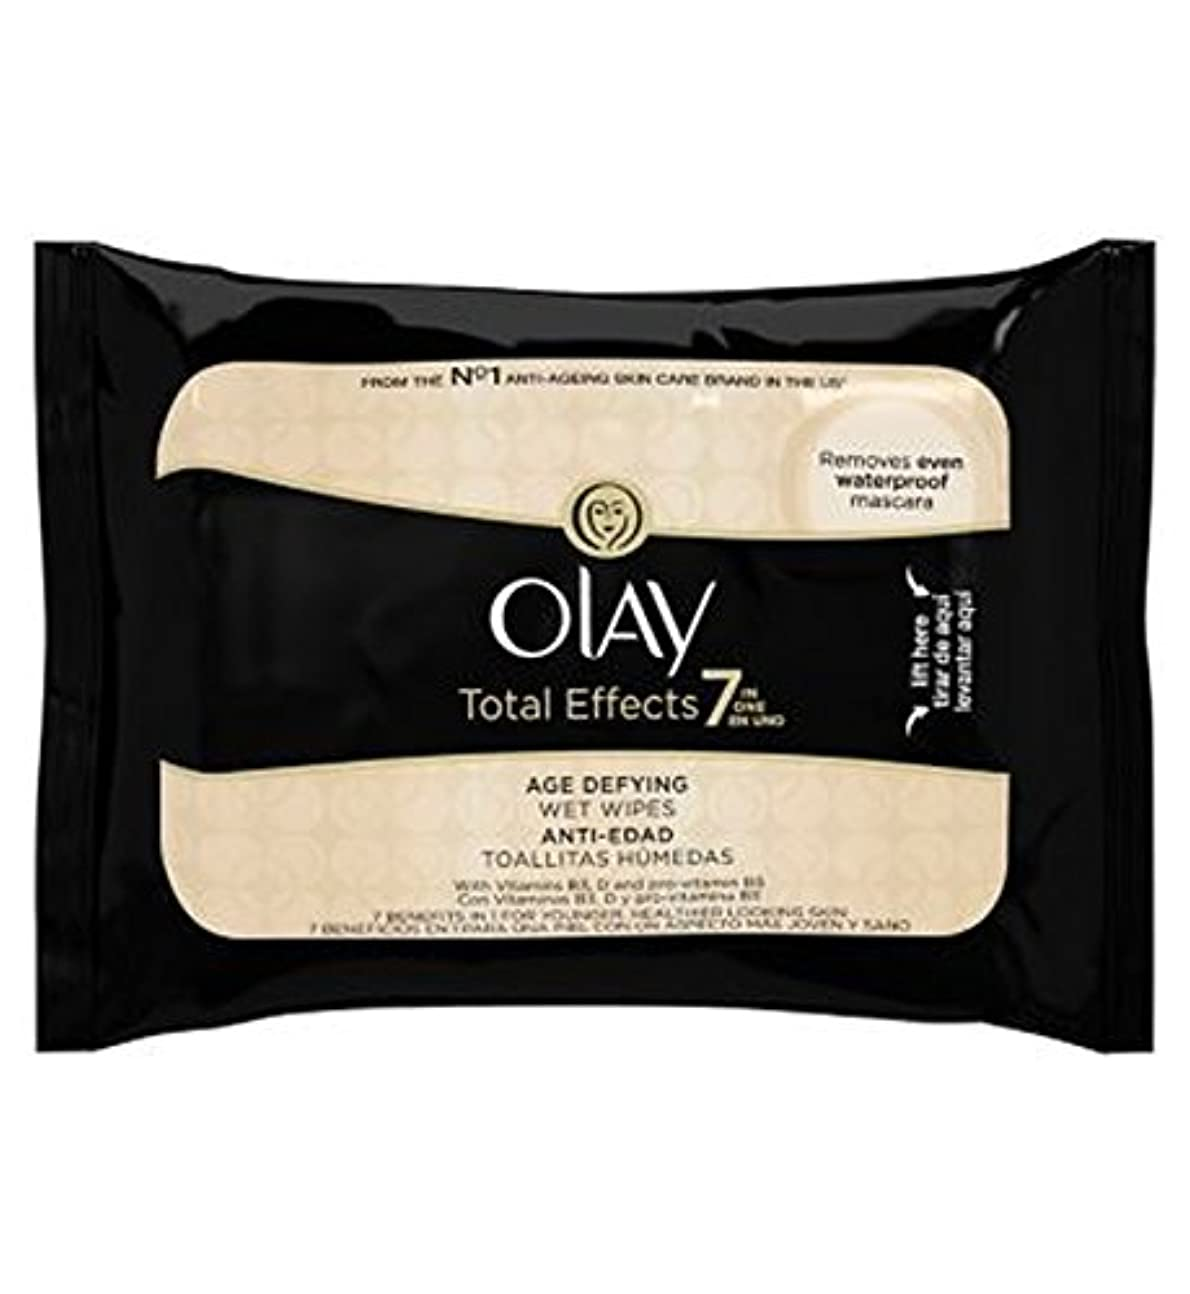 Olay Total Effects 7in1 Age-Defying Wet Wipes 20s - オーレイトータルエフェクト?7In1のウェットティッシュの20代の年齢に挑みます (Olay) [並行輸入品]